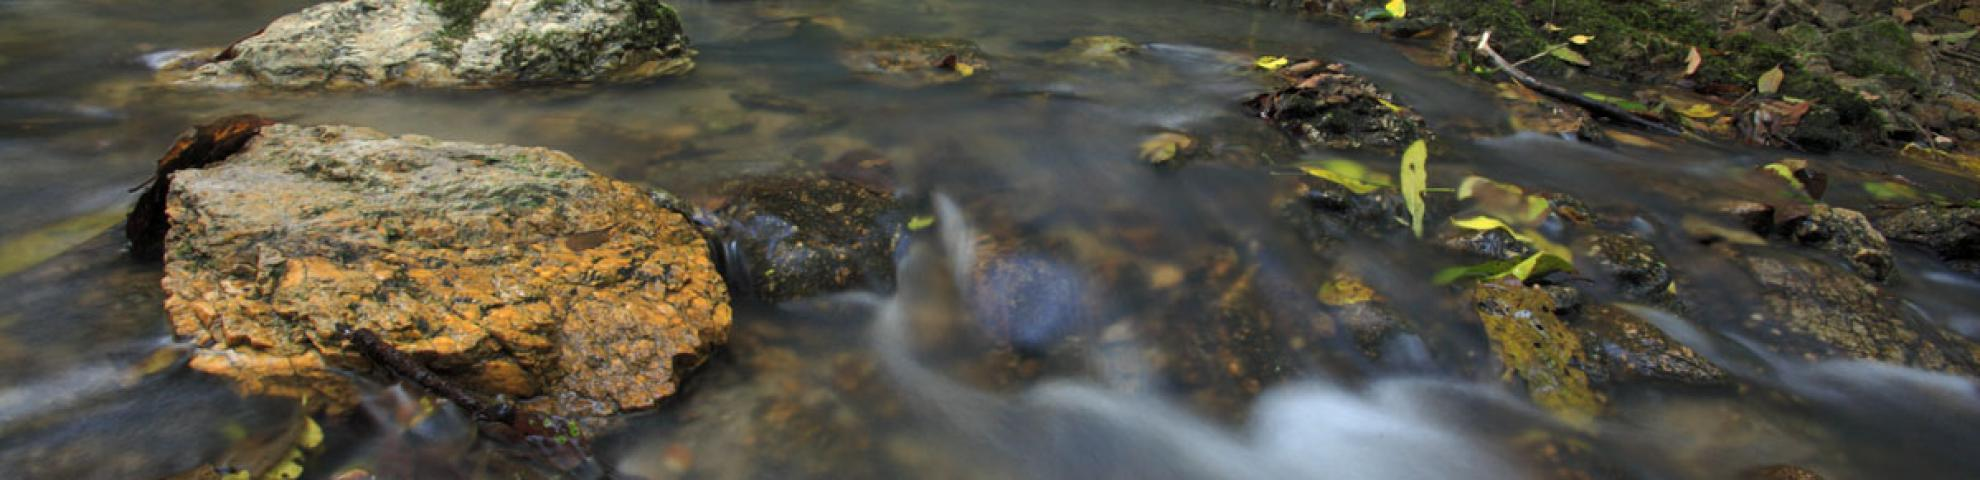 rocks and water in forest